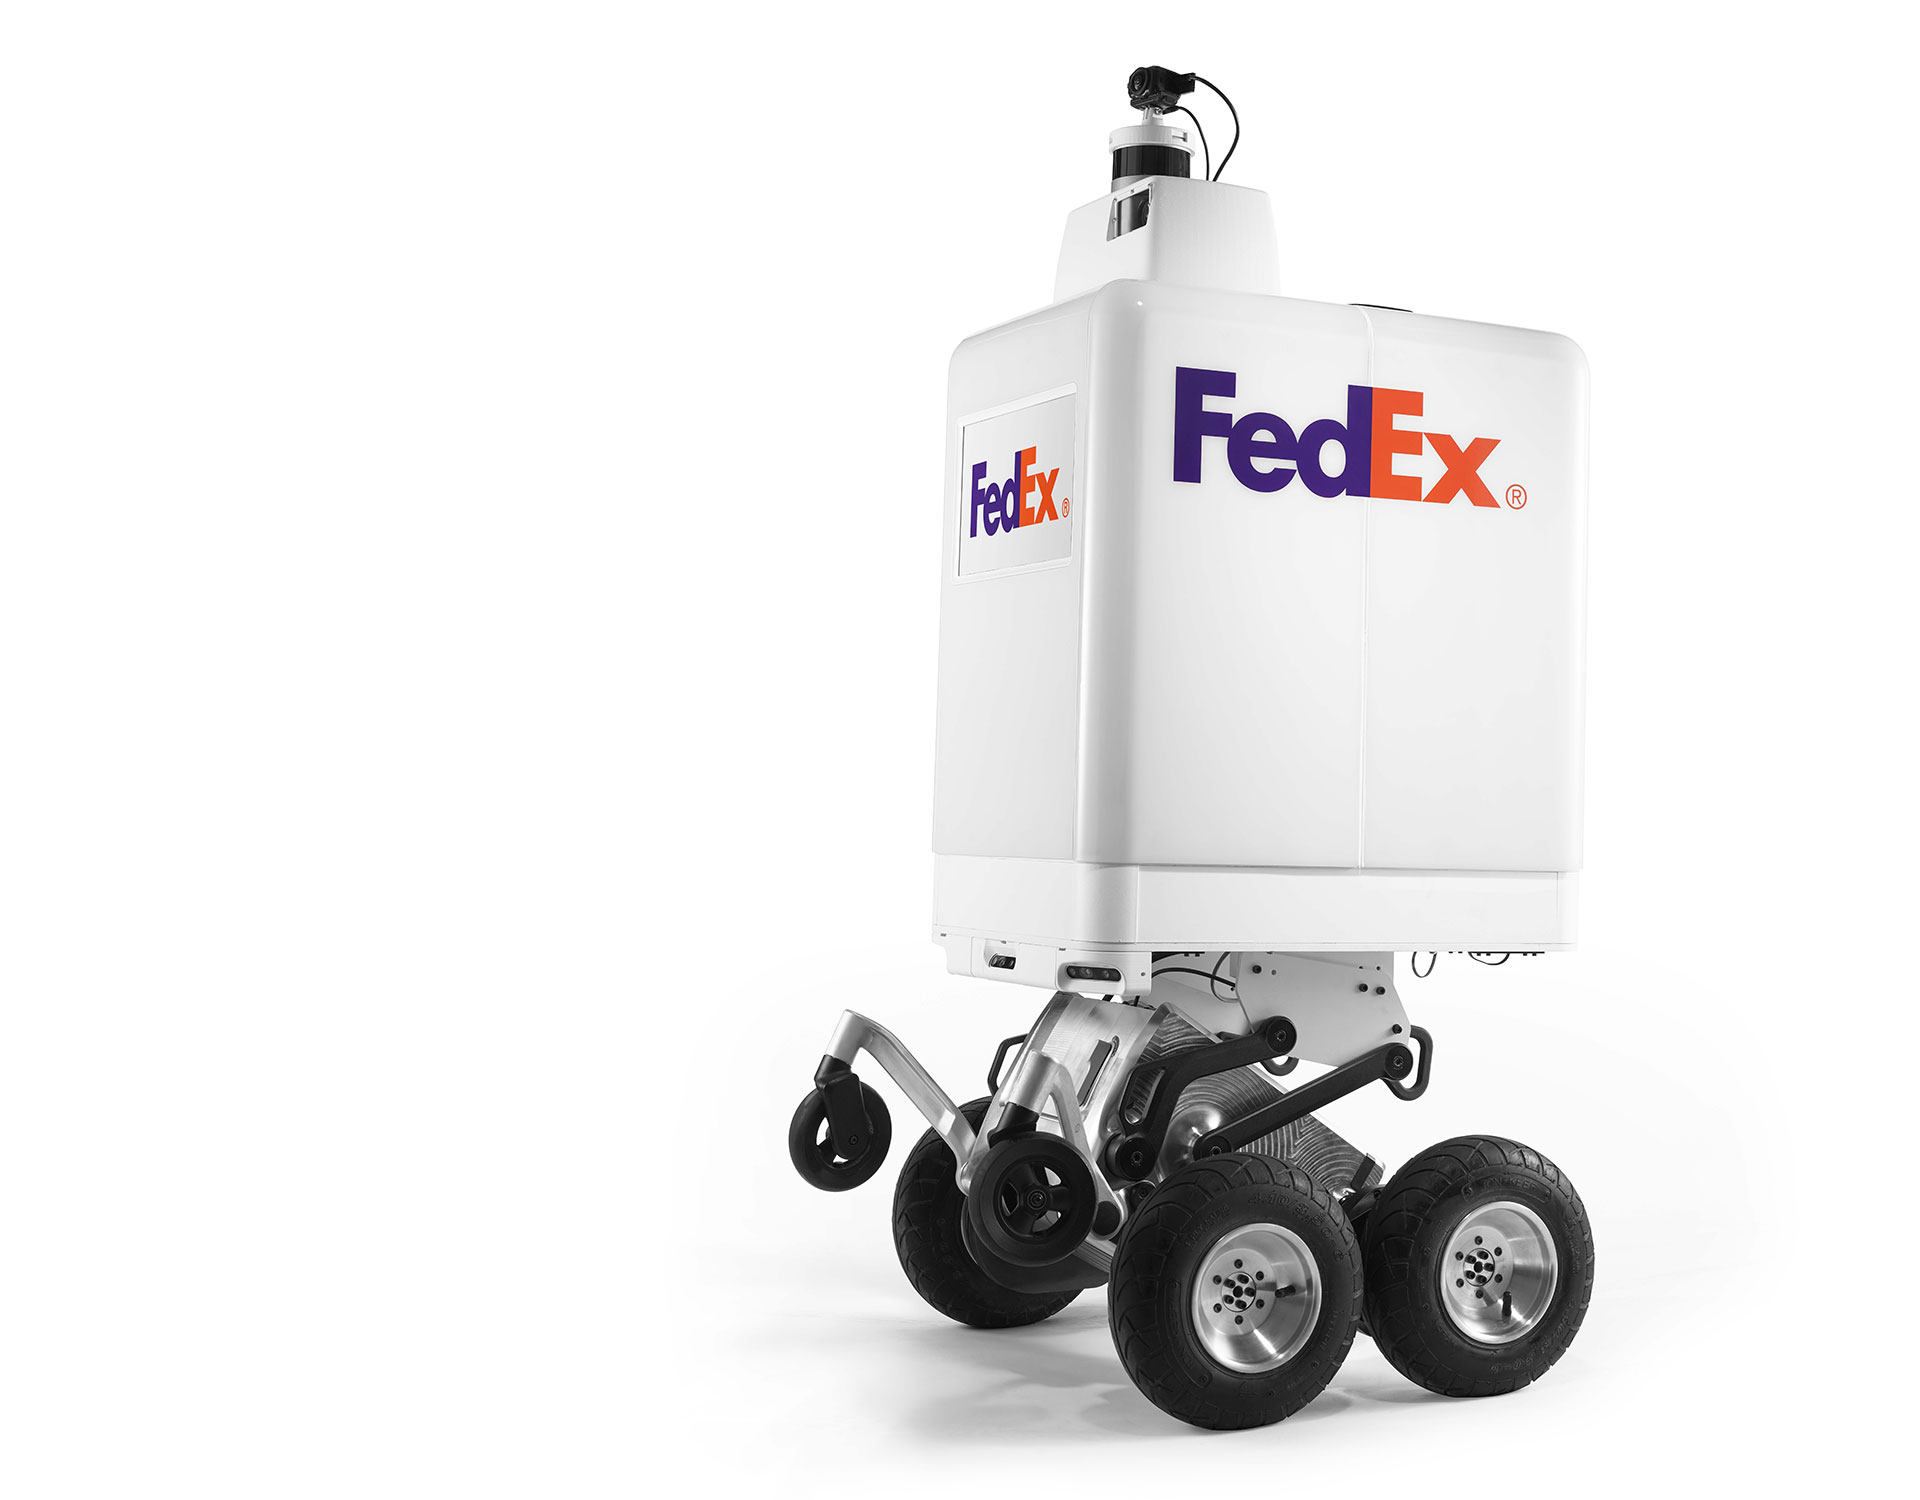 FedEx delivery robot sees courier giant join the last-mile automation race